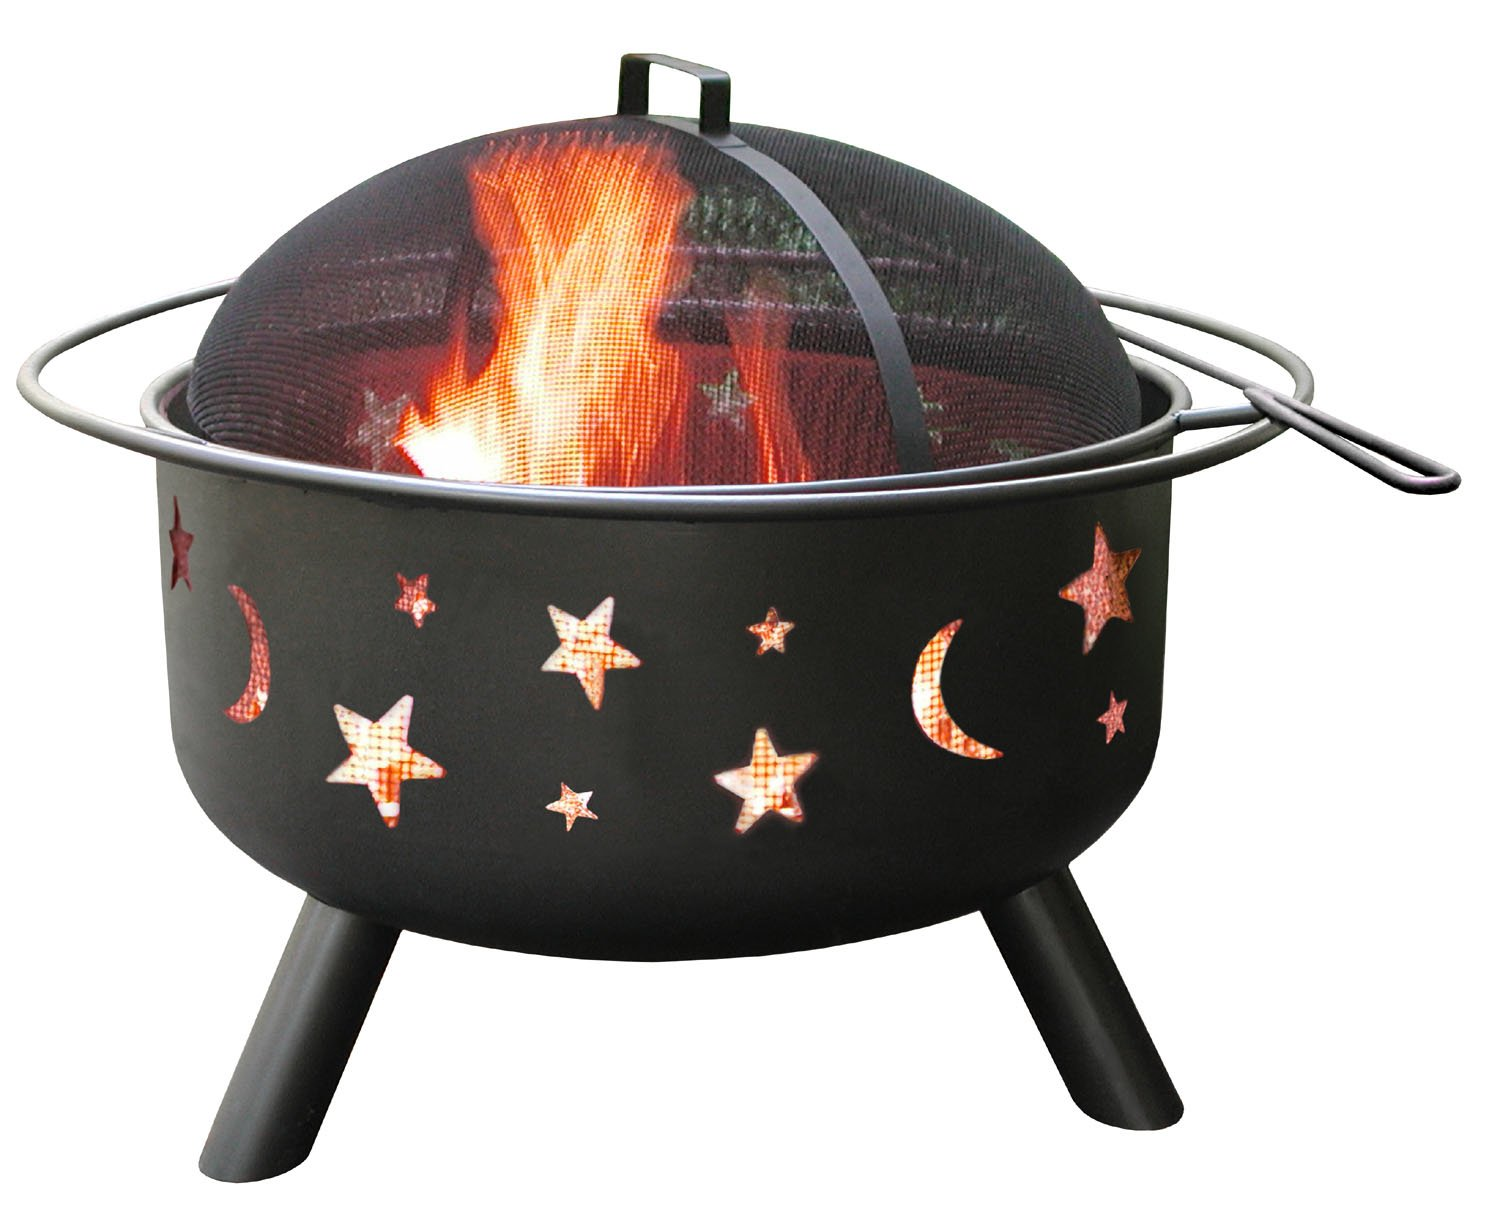 Landmann 28345 Big Sky Stars and Moons Firepit, Black Landmann USA